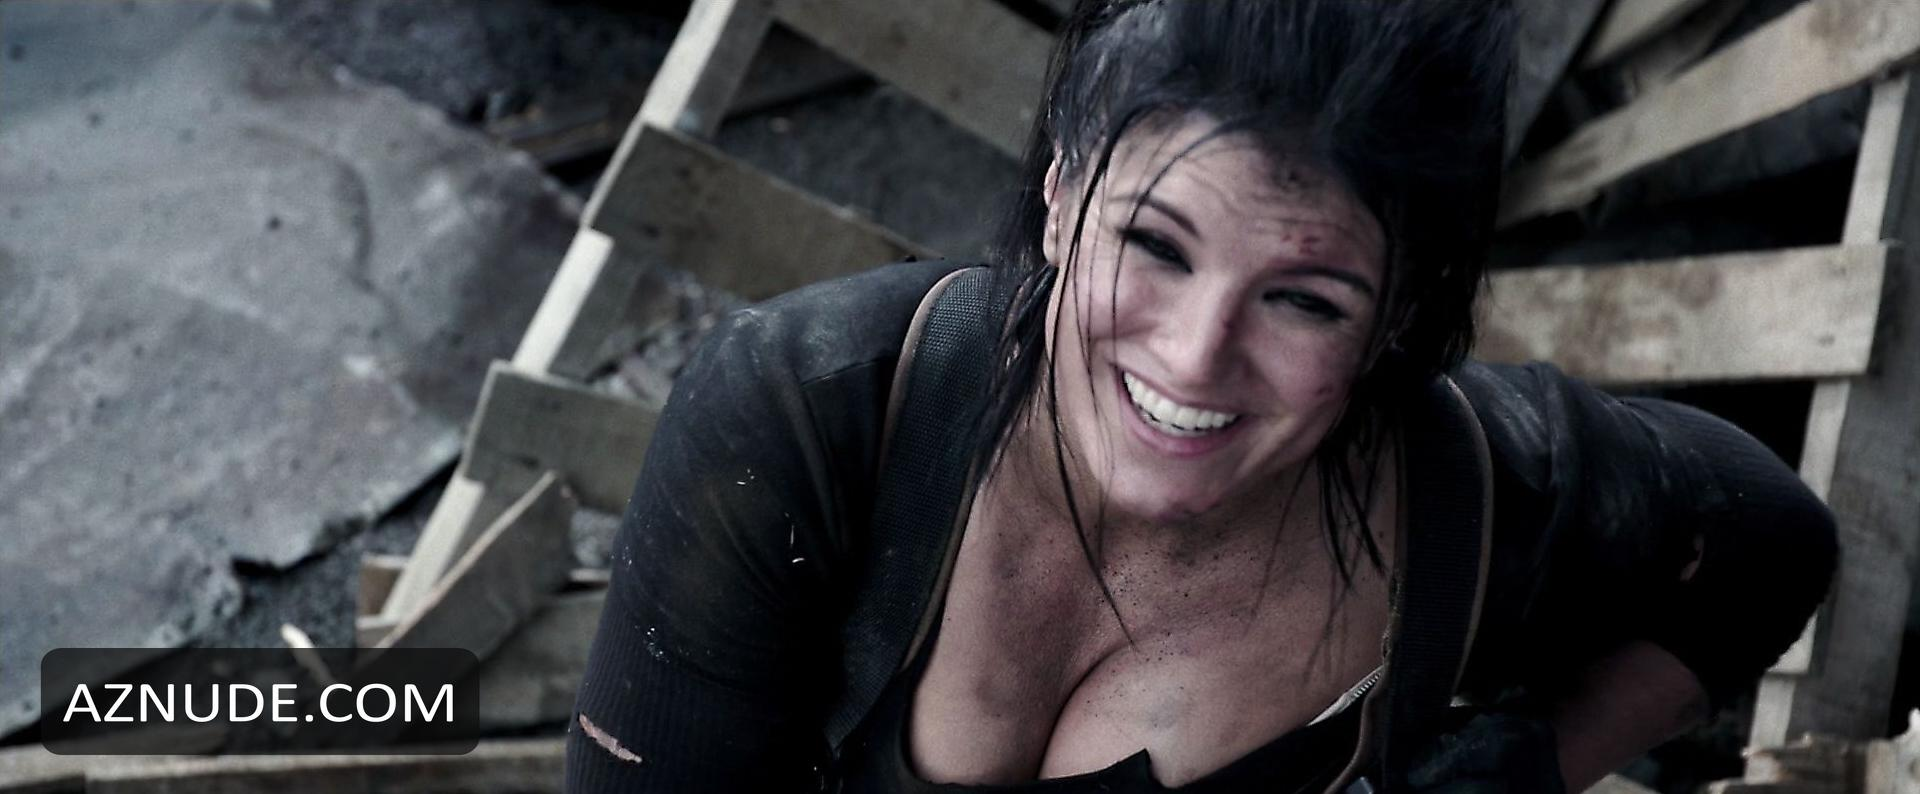 gina carano naked pics of her boobs